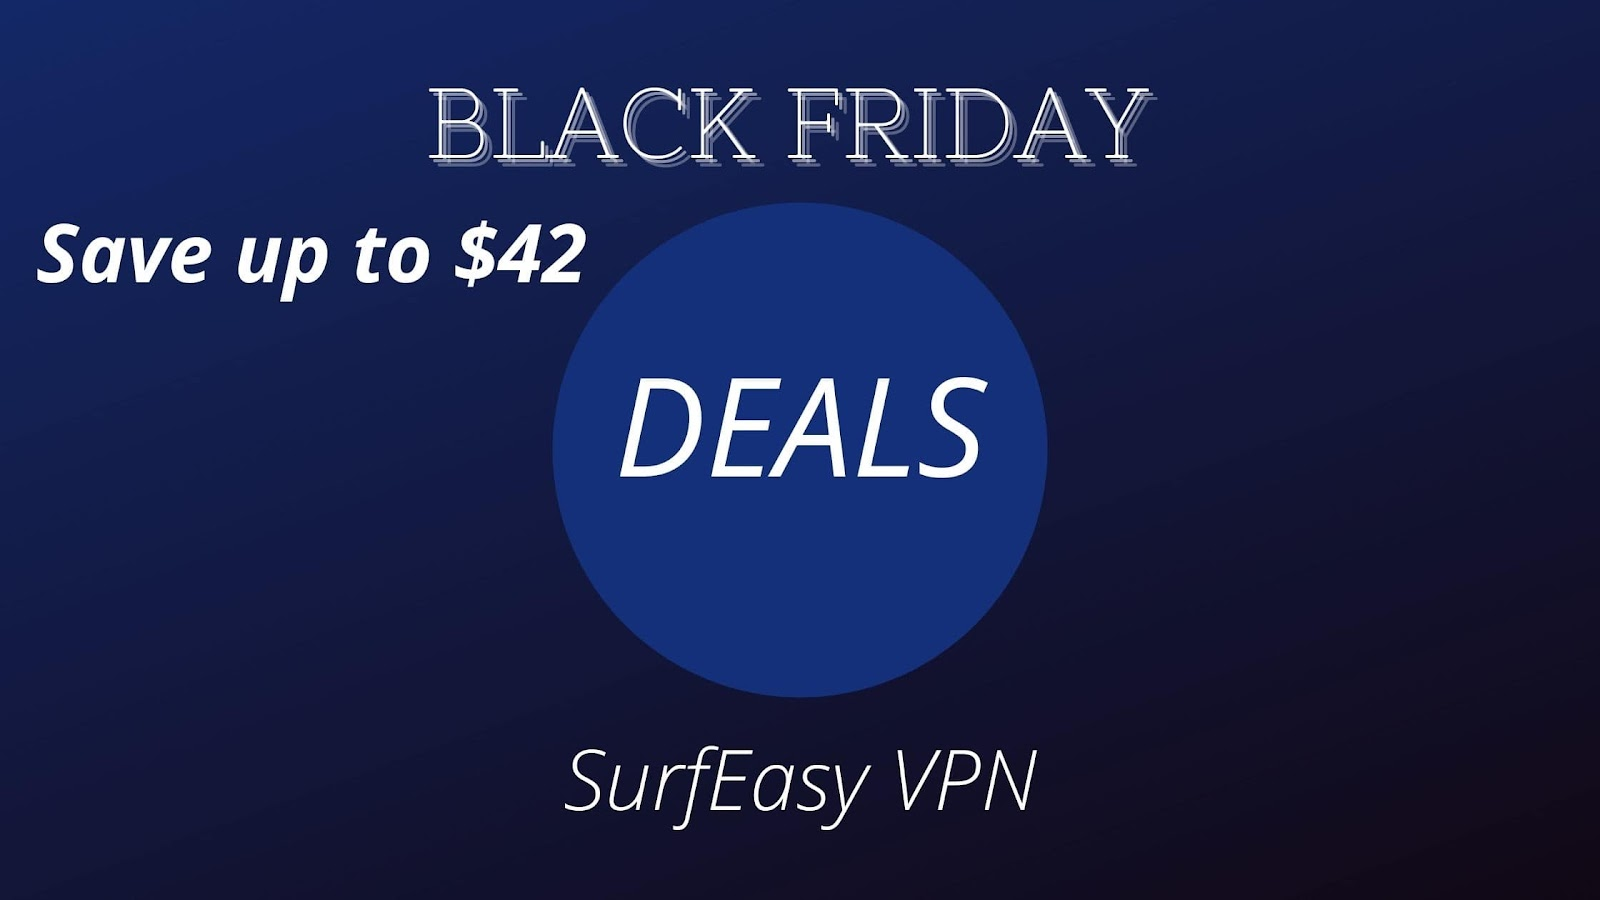 SurfEasy VPN: Save up to $42